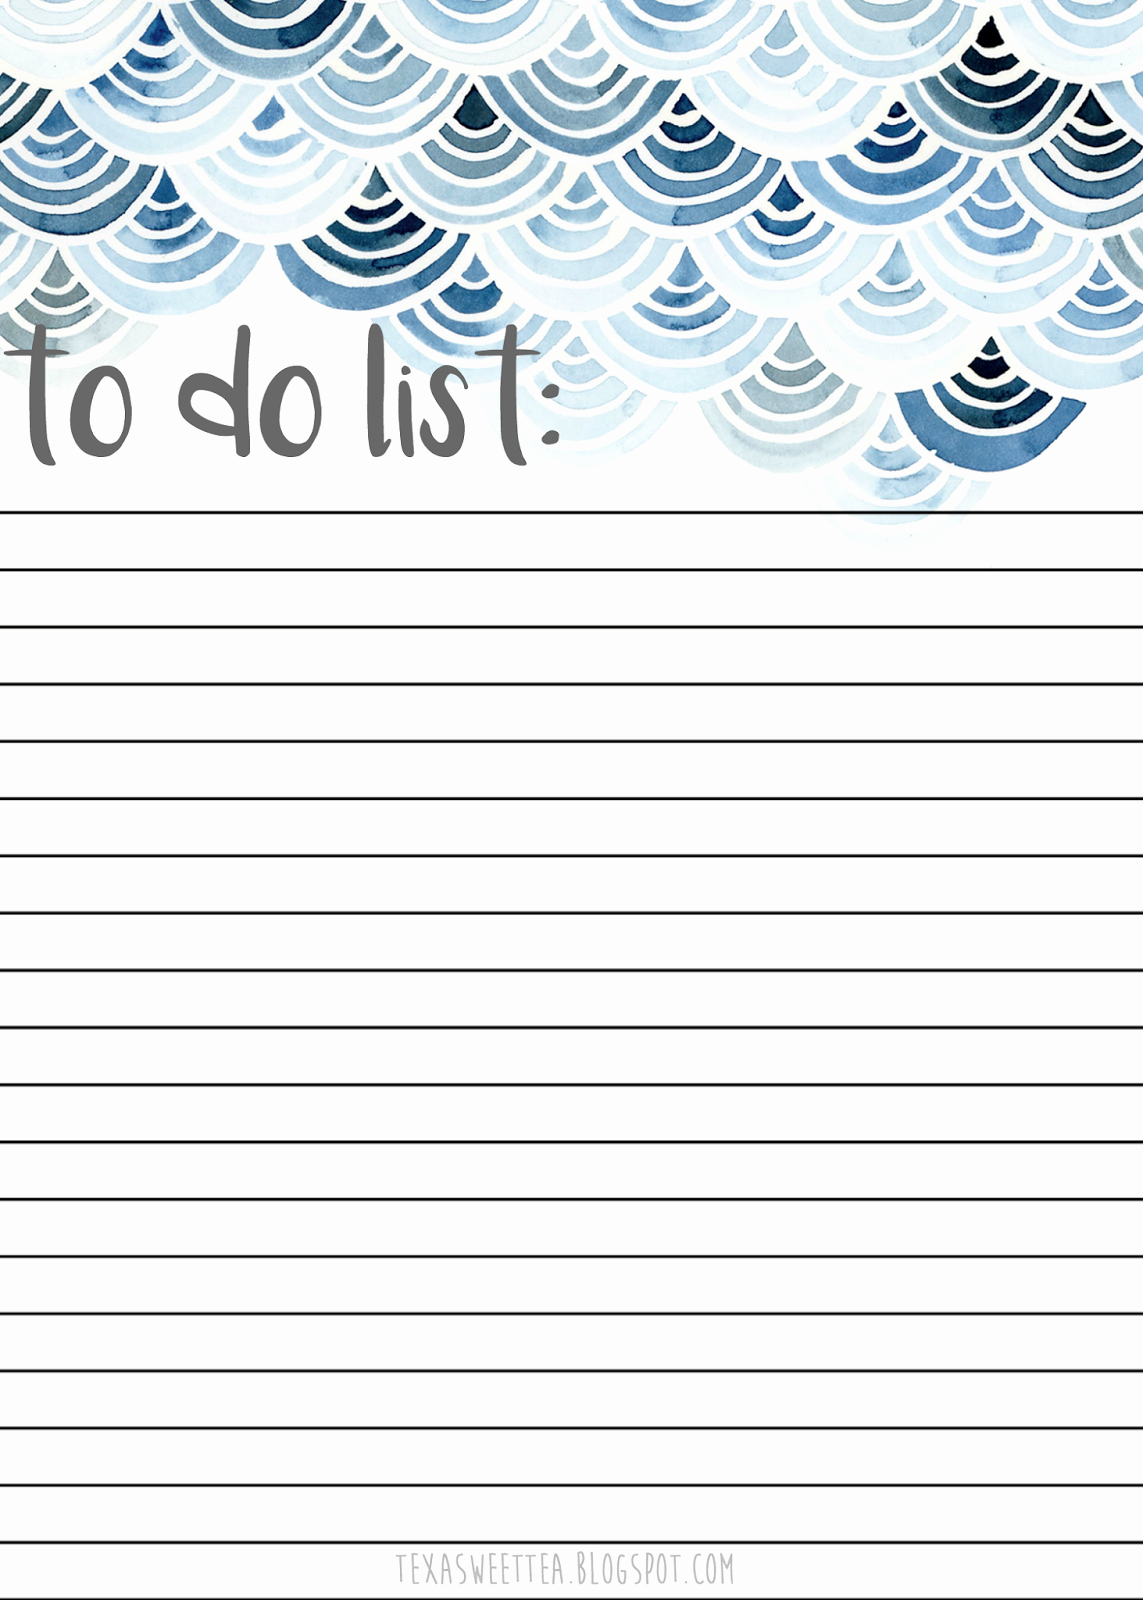 To Do List Free Templates Best Of Free to Do List Printable